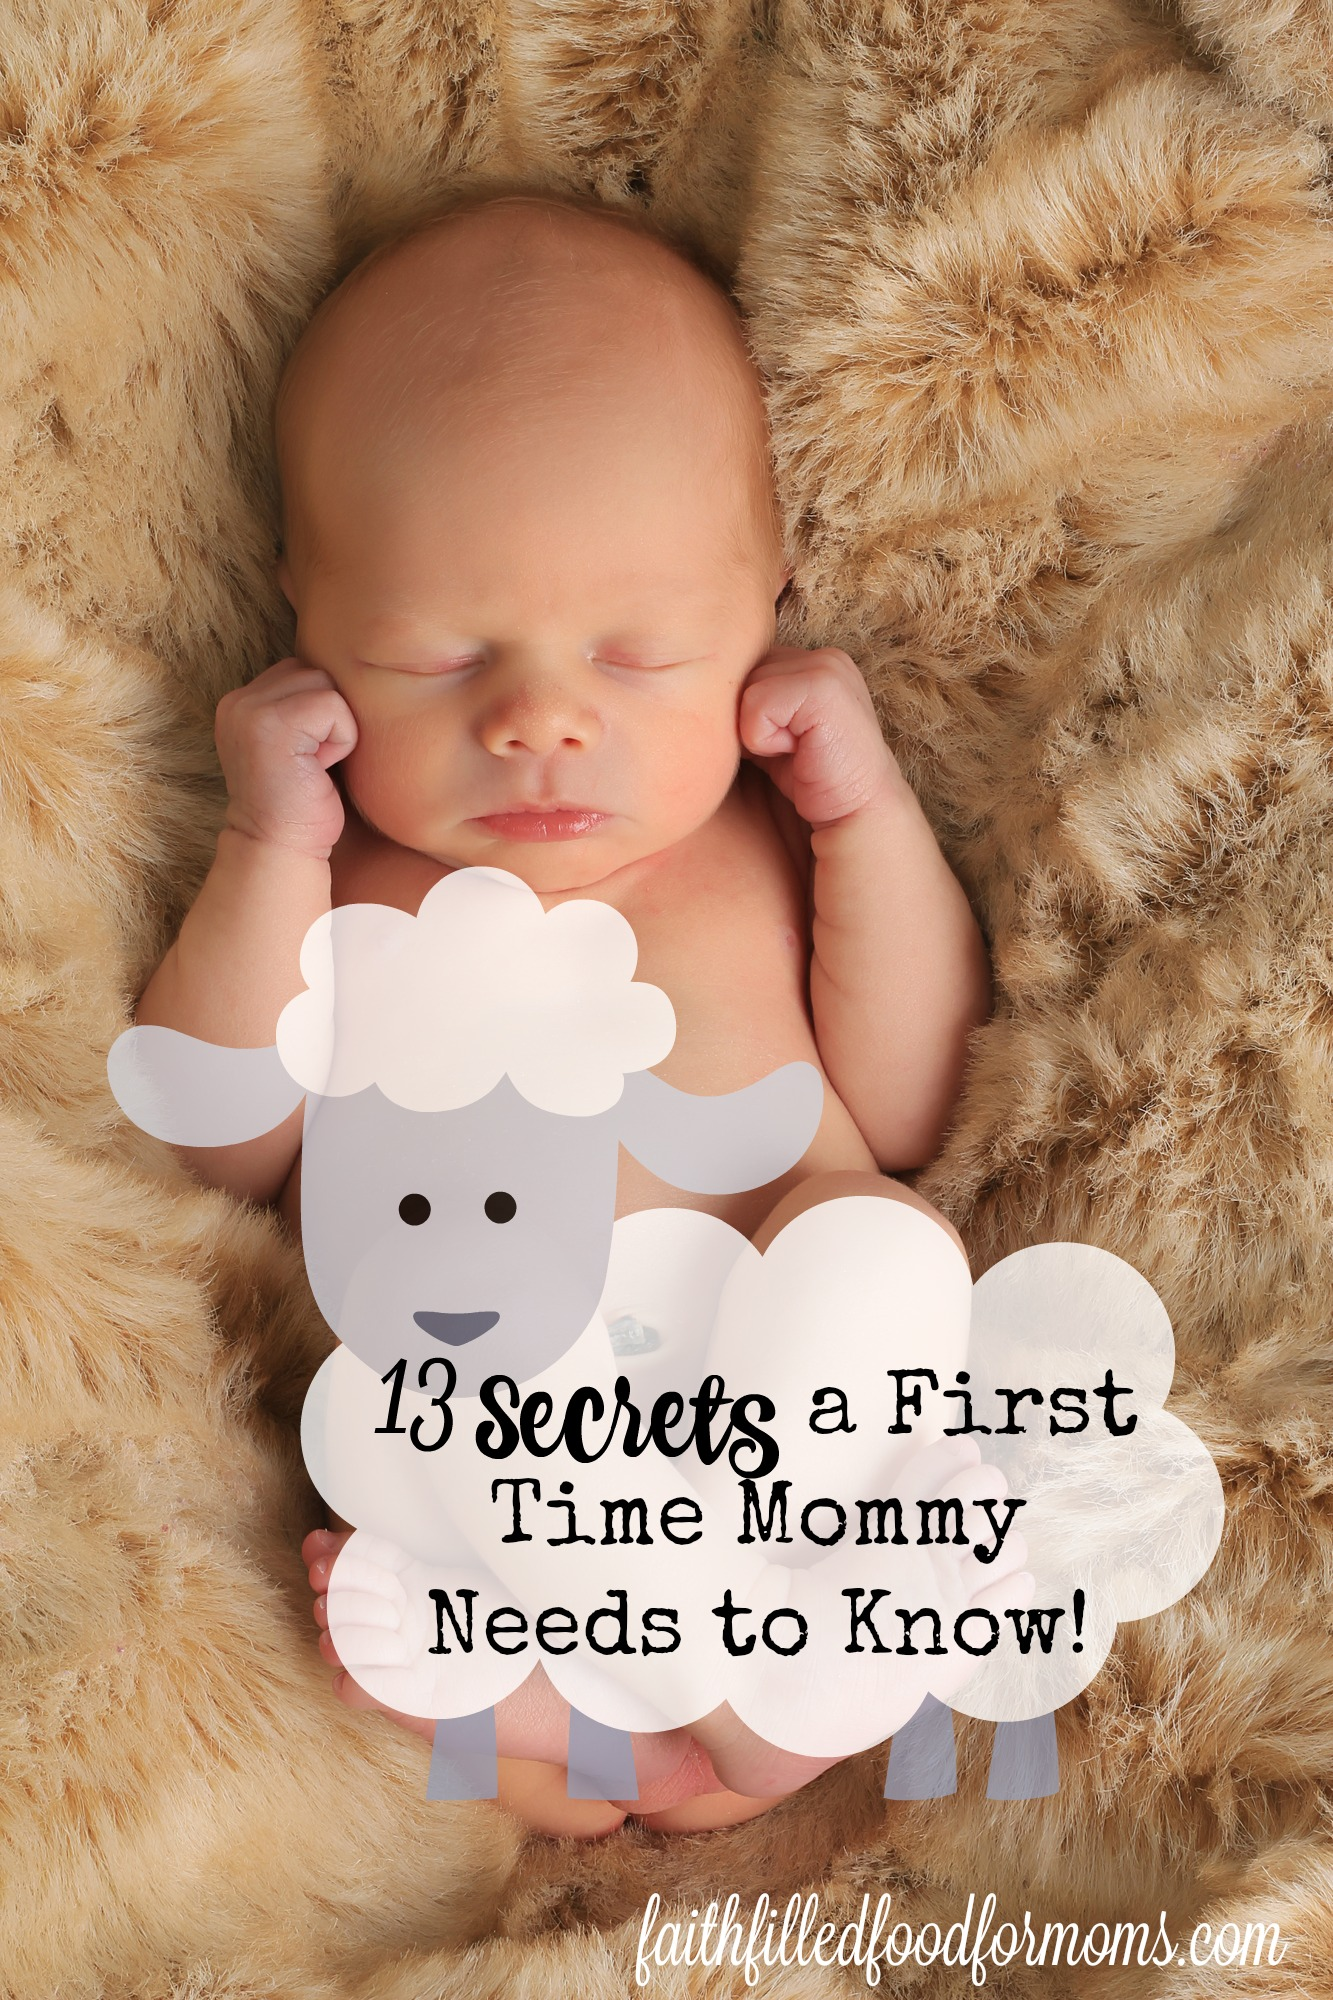 13 Secrets First Time Mommy's Need to know